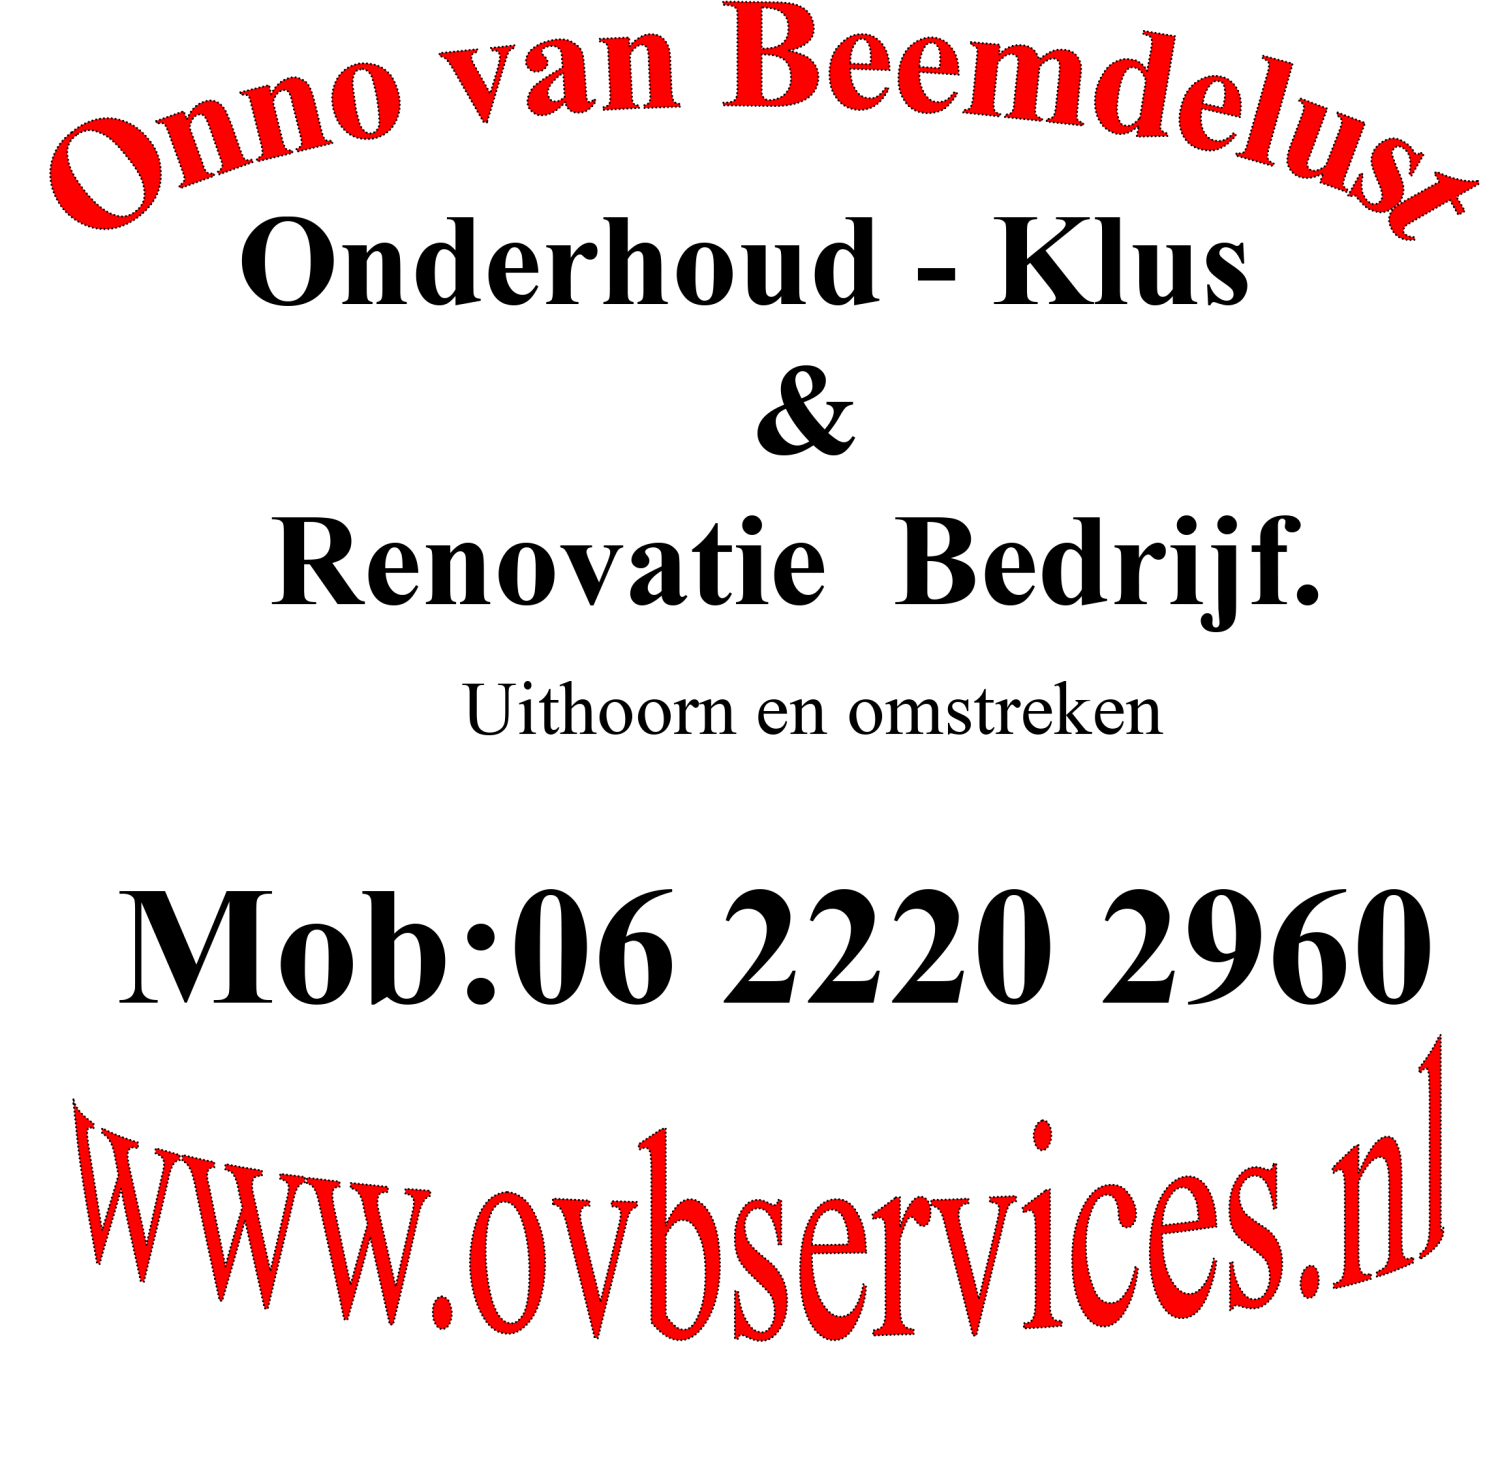 OVB SERVICES